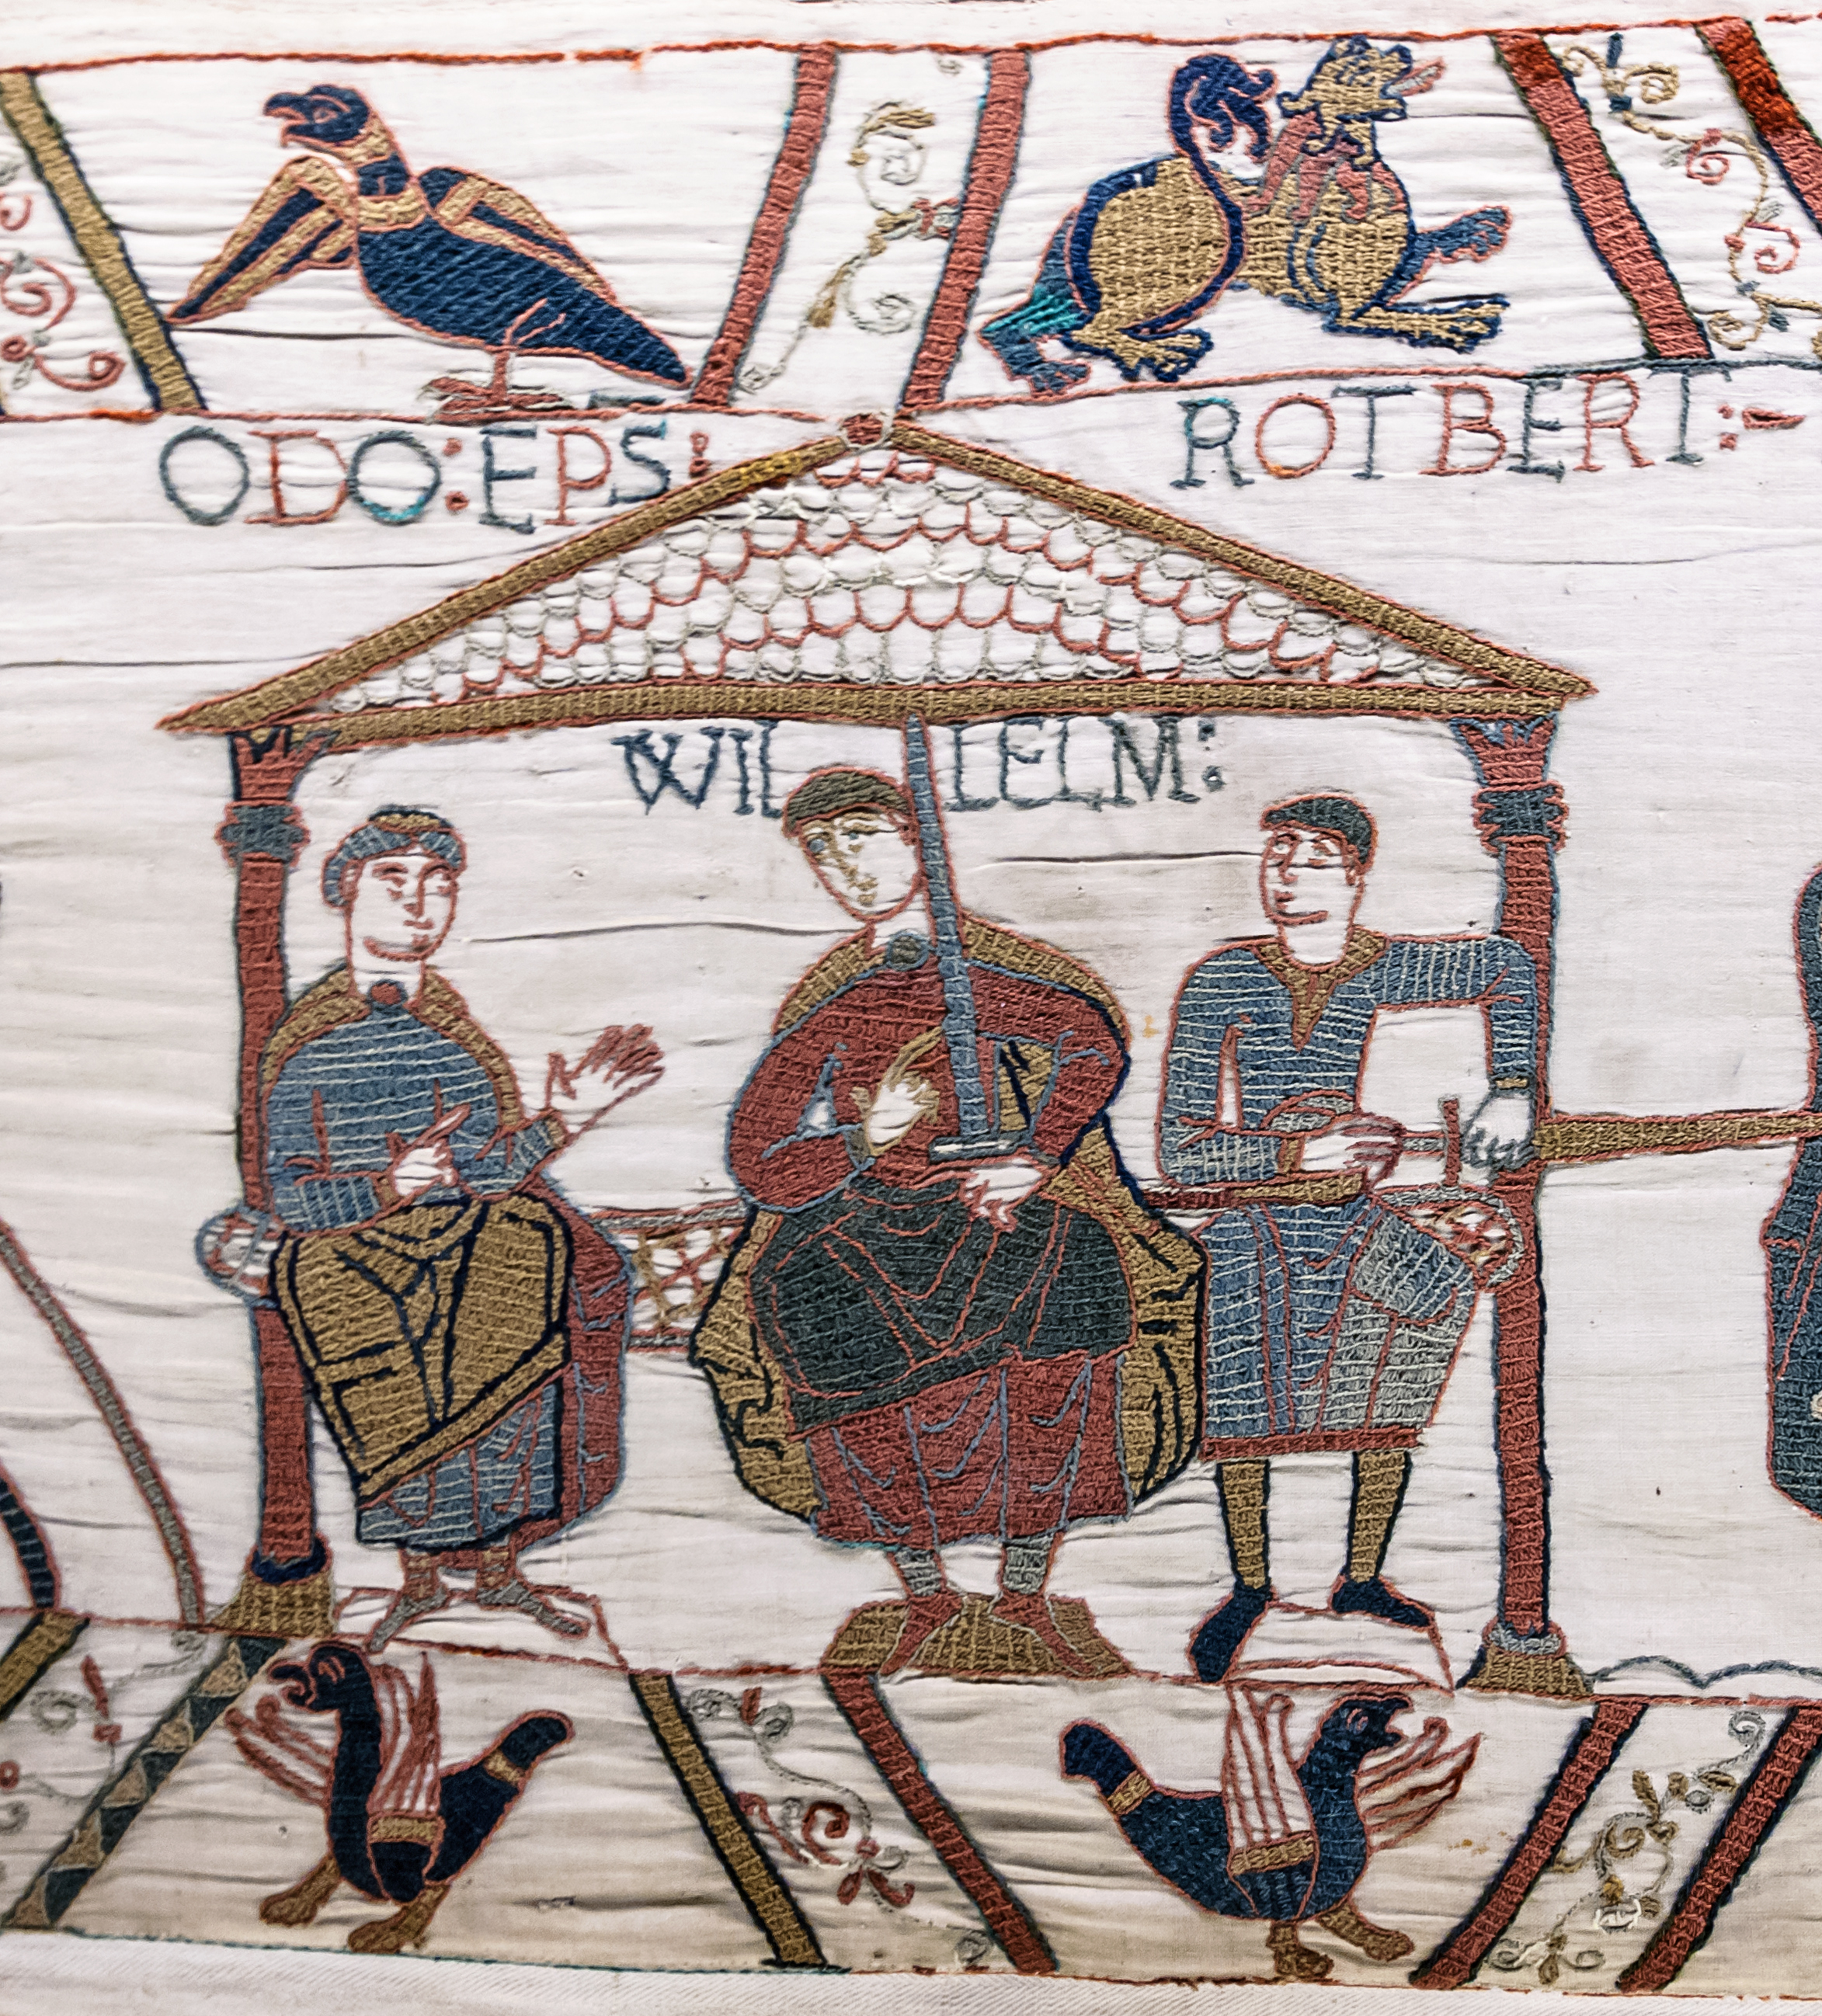 FileBayeux Tapestry scene44 William Odo Robertjpg